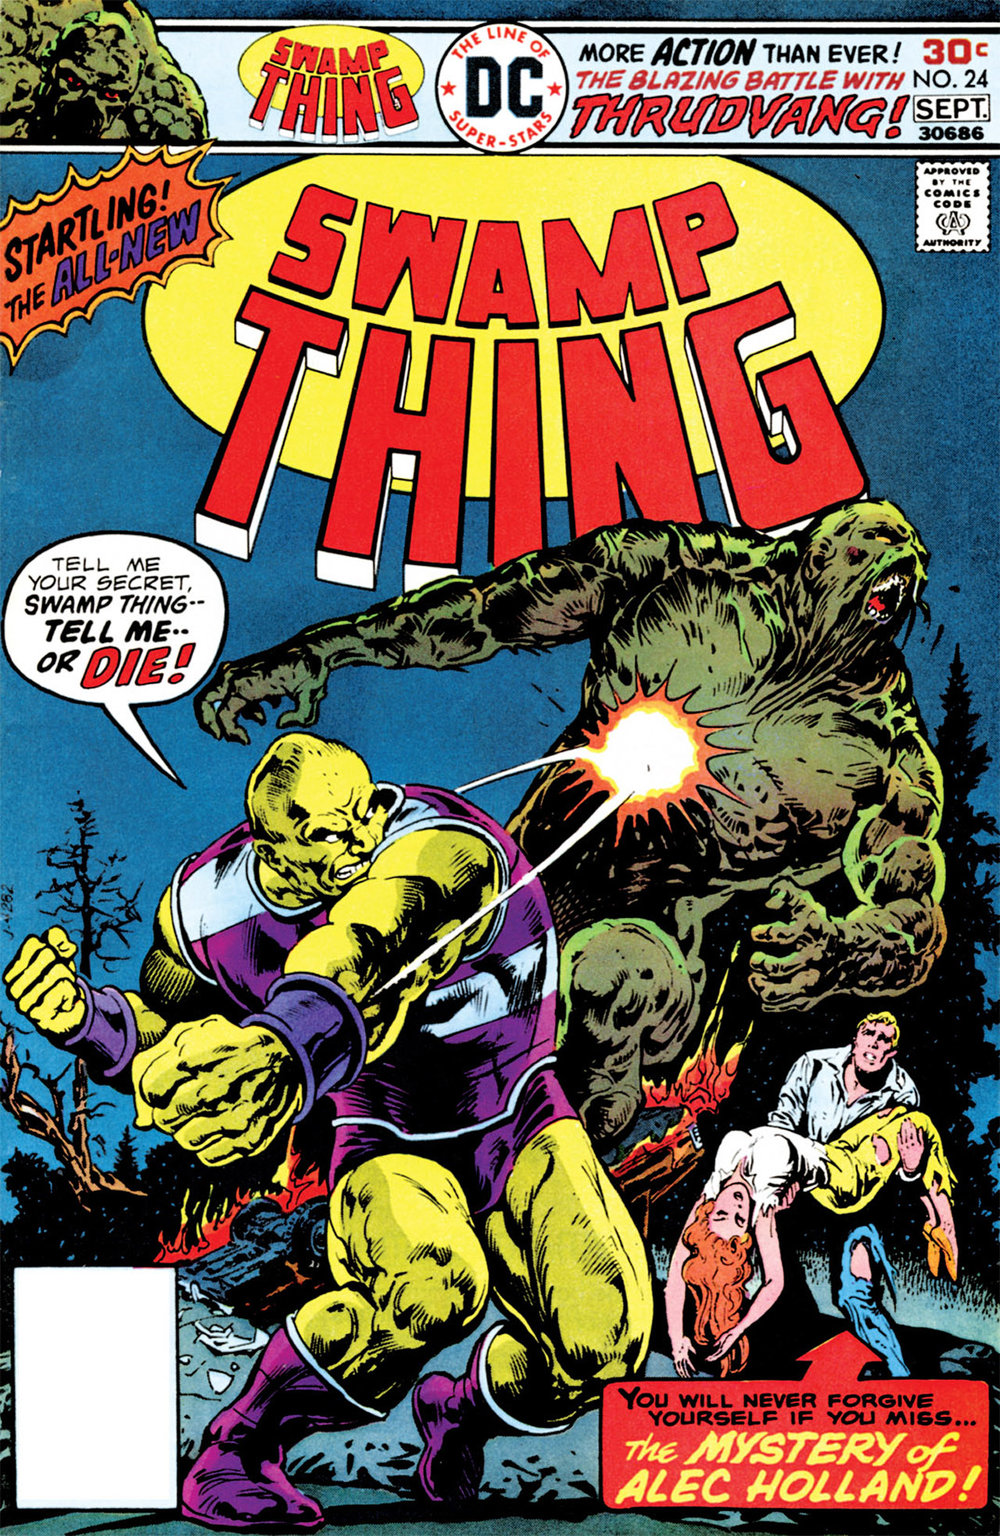 Swamp Thing (1972) #24, cover by Joe Orlando, logo by John Workman.